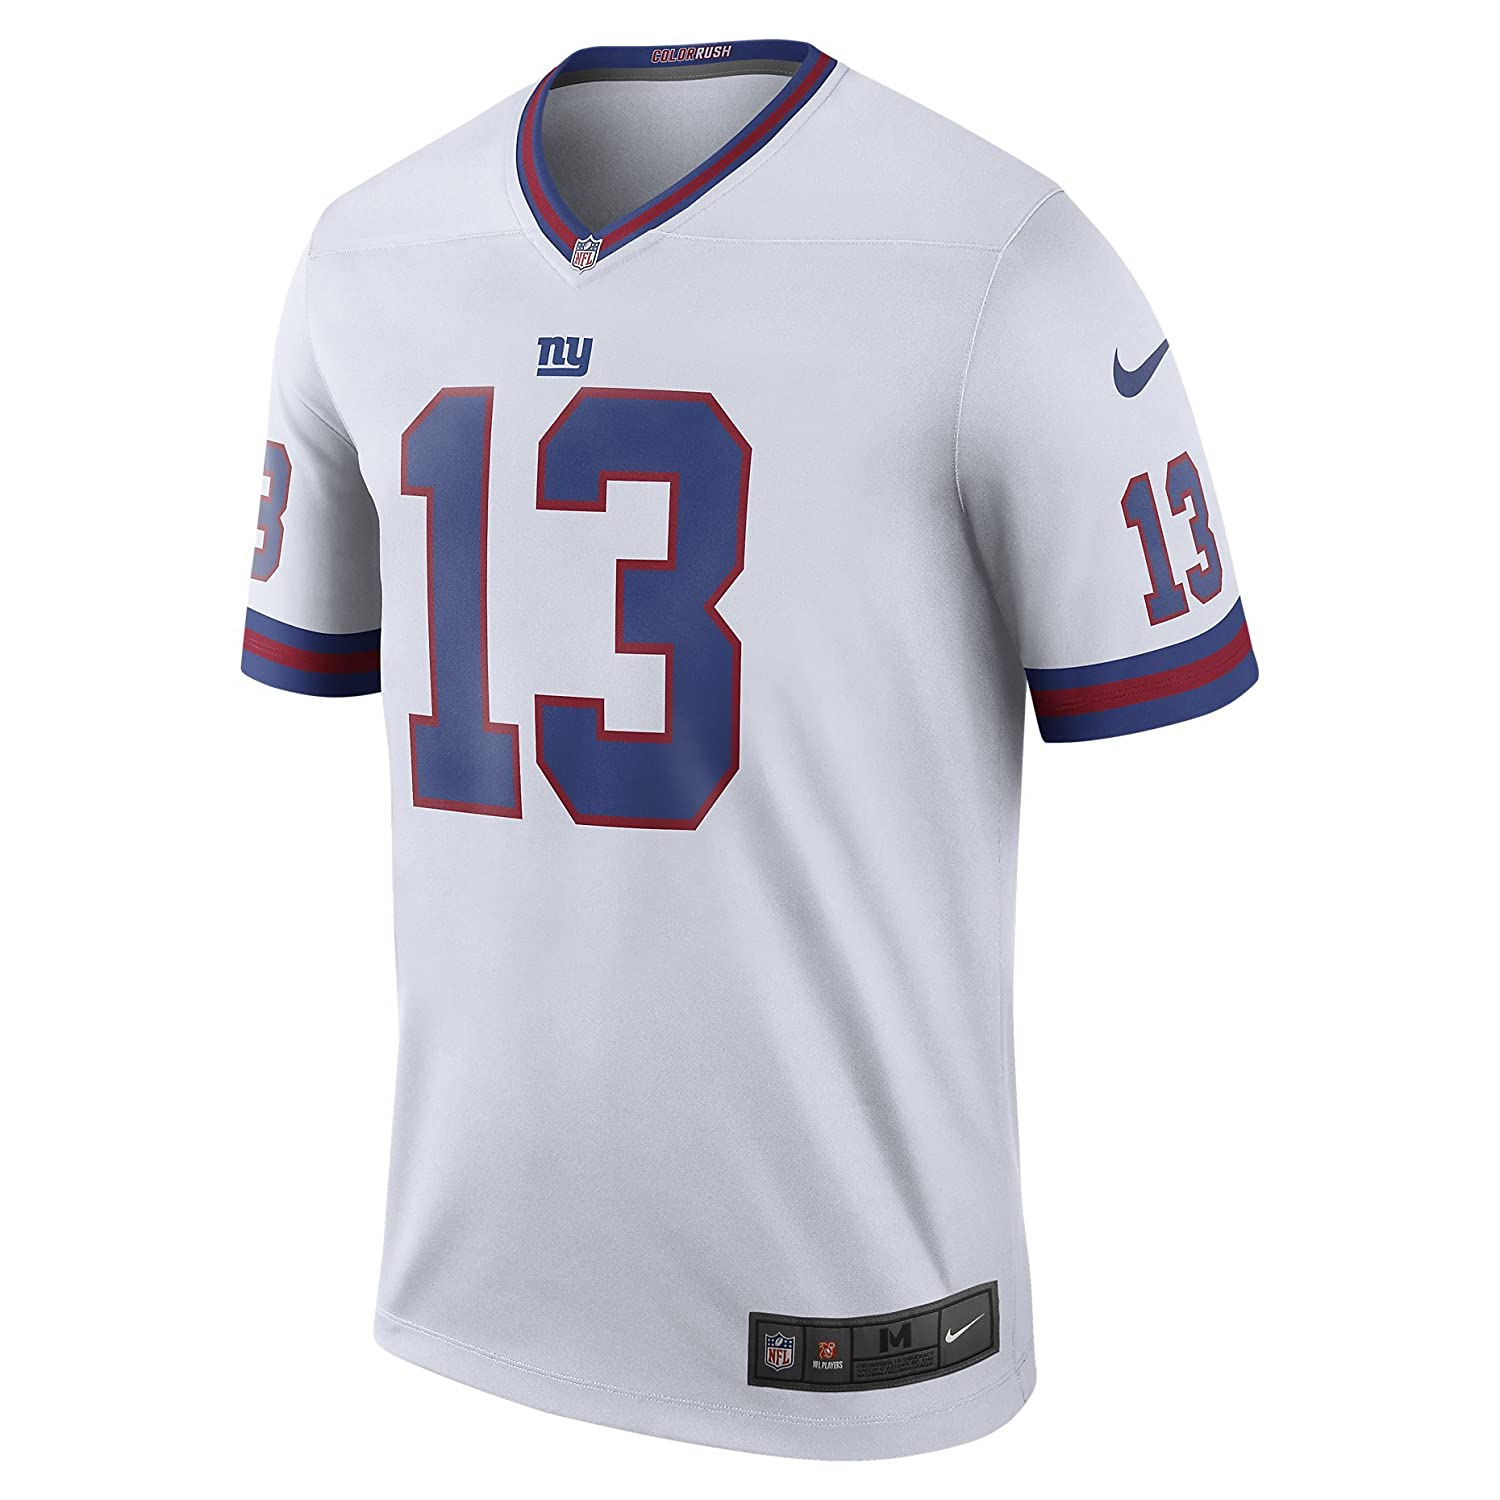 382214c7b Amazon.com  Nike Odell Beckham Jr York Giants Color Rush White Legend  Dri-FIT Jersey - Men s XL (X-Large)  Clothing